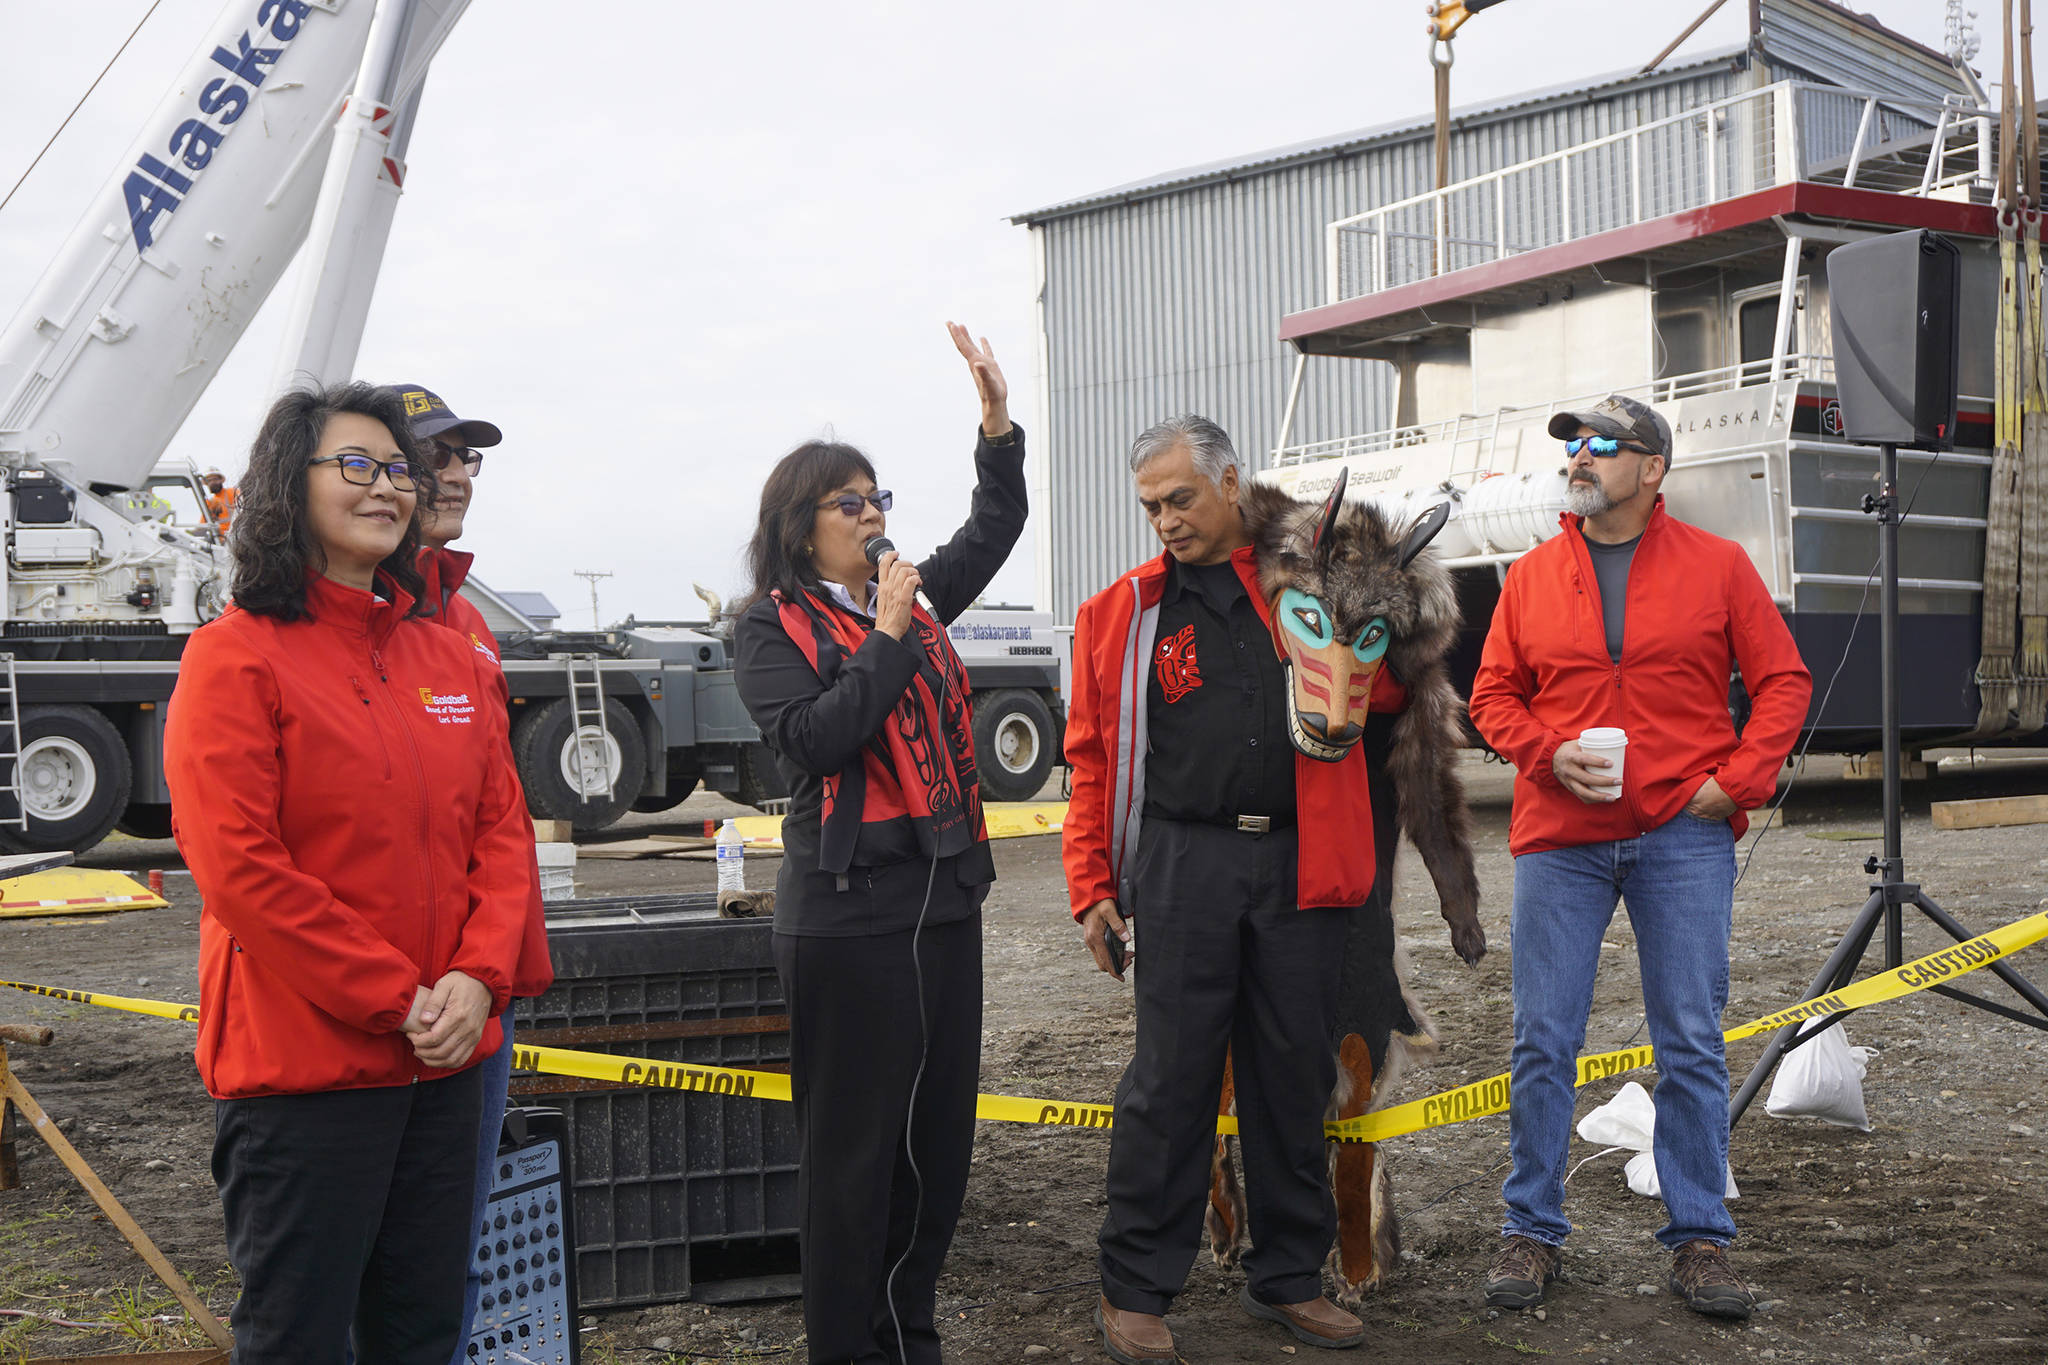 Katherine Eldemar, vice-chair of the board of directors of Goldbelt Inc., speaks at the launch of the Goldbelt Seawolf on Tuesday, Sept. 10, 2019, at the Northern Enterprises Boatyard in Homer, Alaska. (Photo by Michael Armstrong/Homer News)